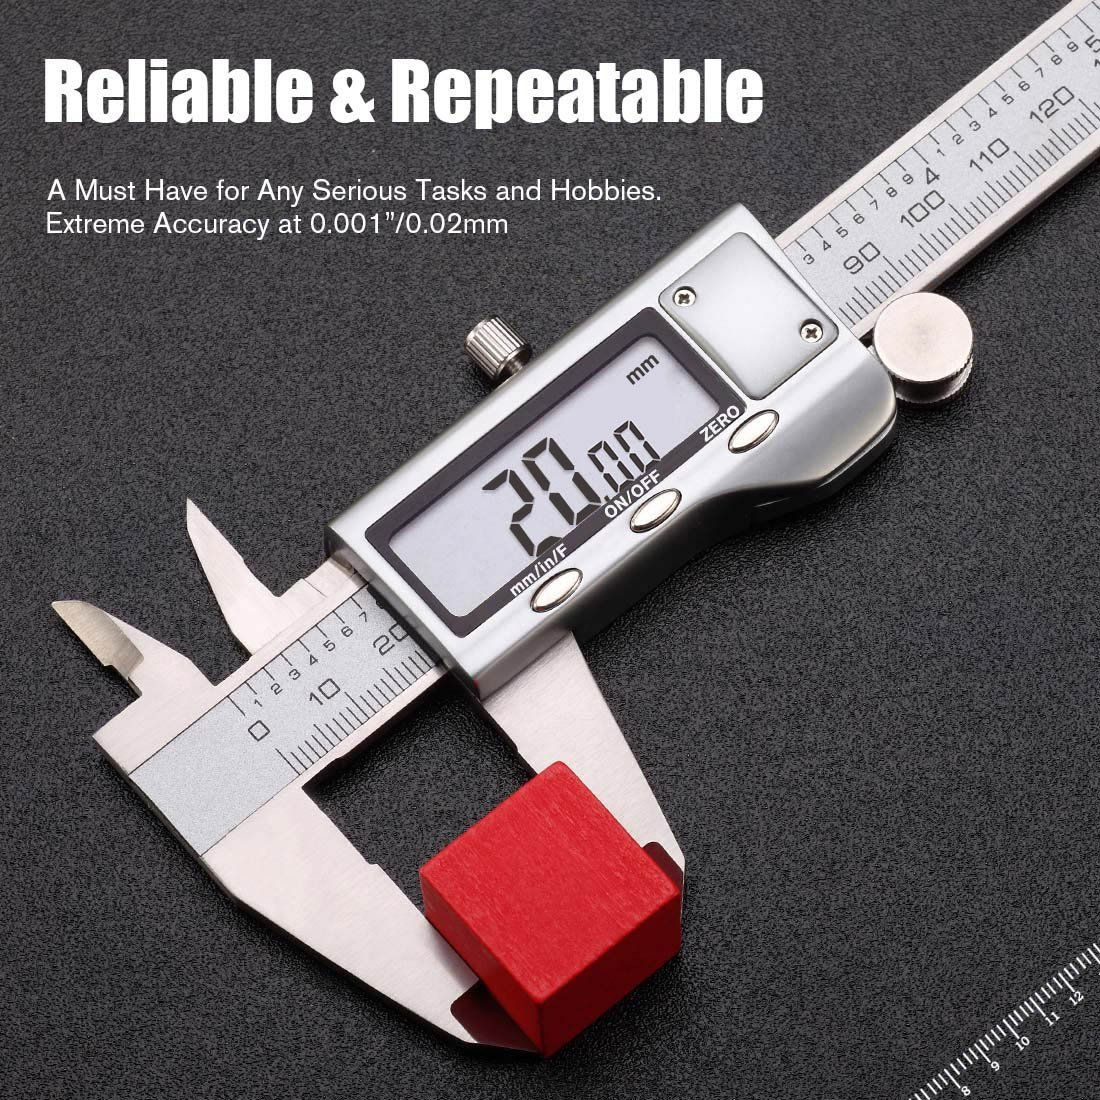 Digital Caliper 6 Inch Measuring Tool Stainless Steel Inch Mm Fractions Electronic Vernier Calipers Gauge Fo Measurement Tools Digital Calipers Vernier Caliper